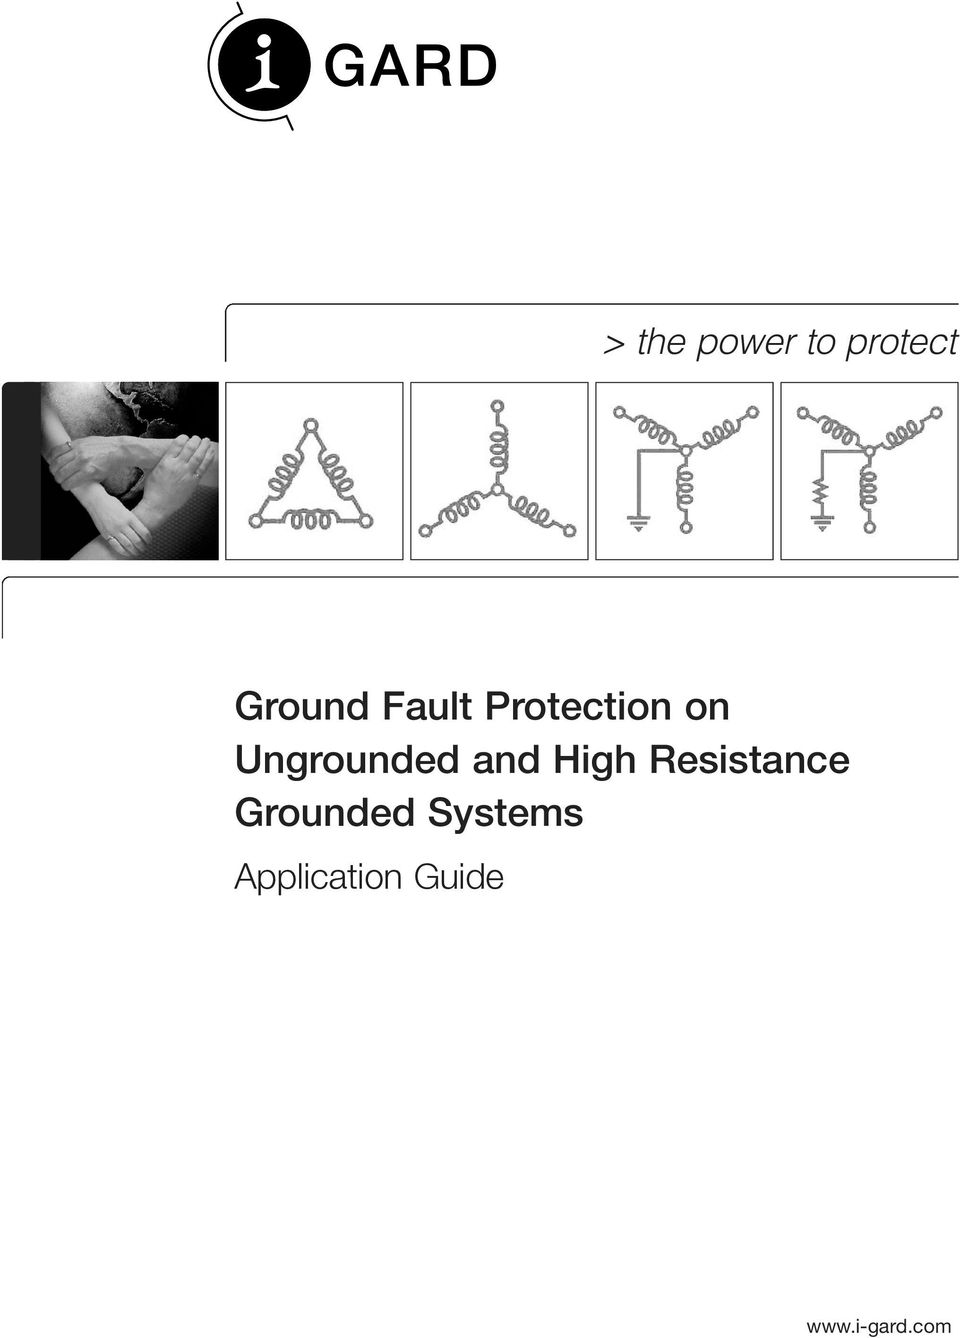 Ground Fault Protection On Ungrounded And High Resistance Grounded Power Cord Wiring Diagram